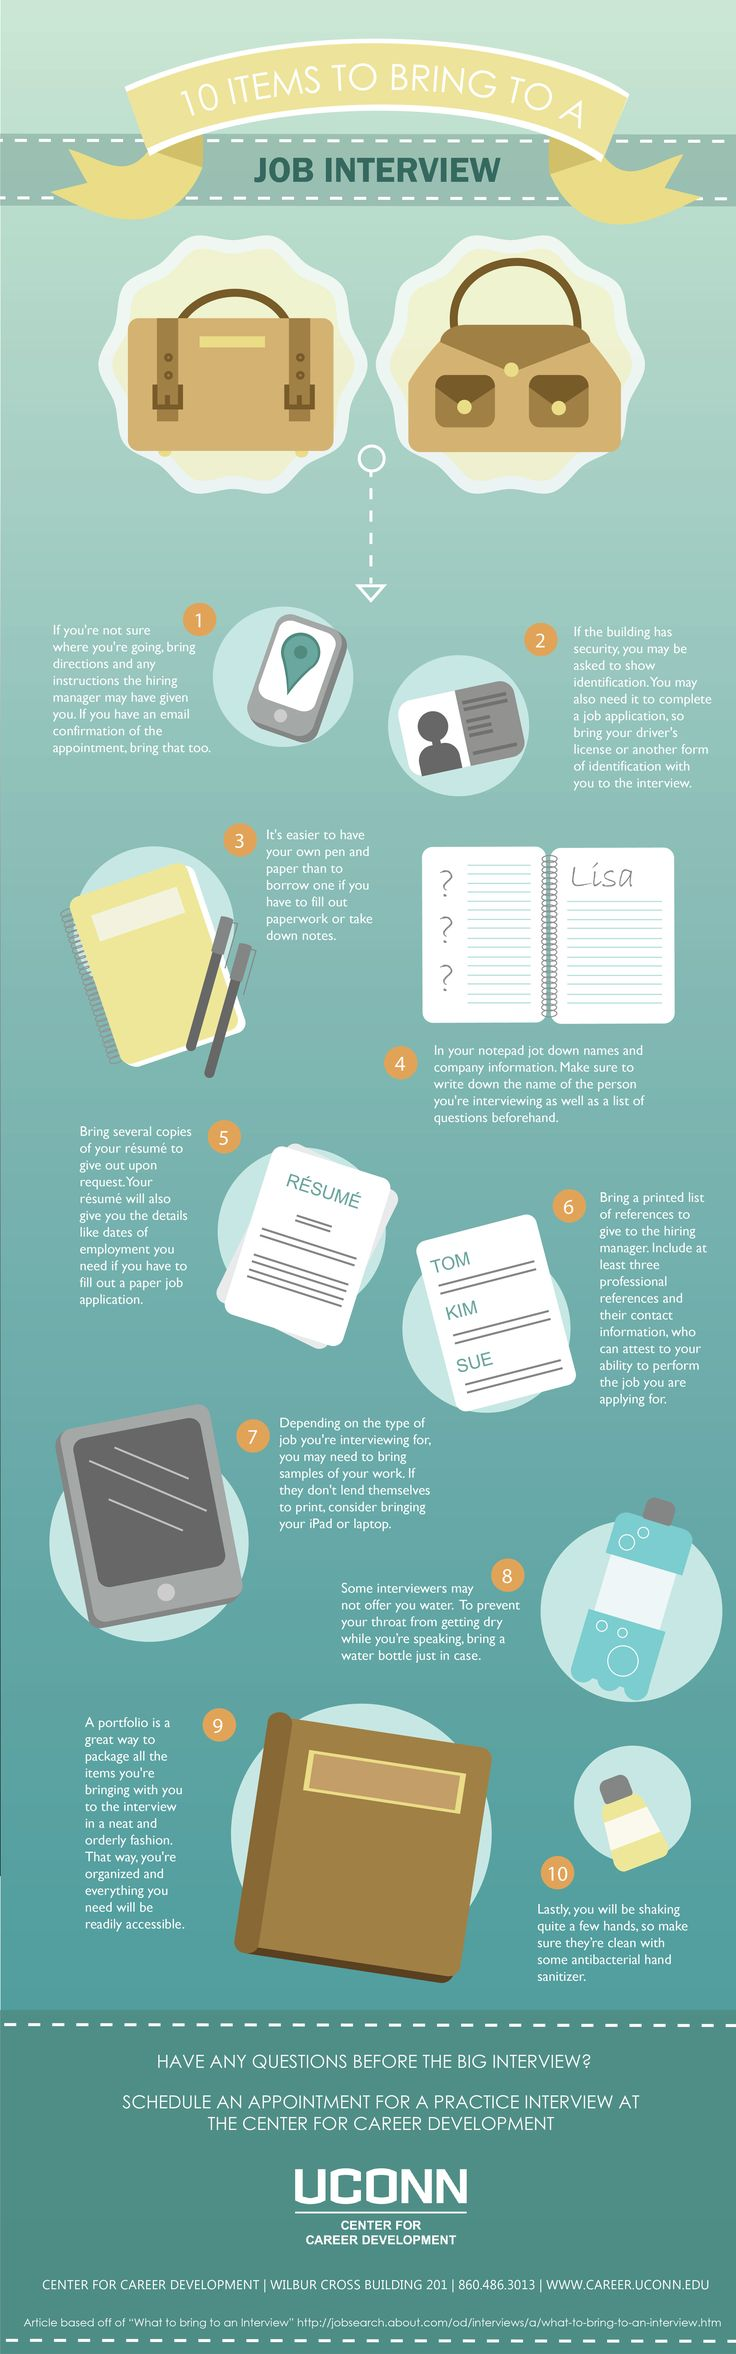 Infographic Infographic : 10 Items To Bring To A Job Interview. Image  Description Infographic : 10 Items To Bring To A Job Interview